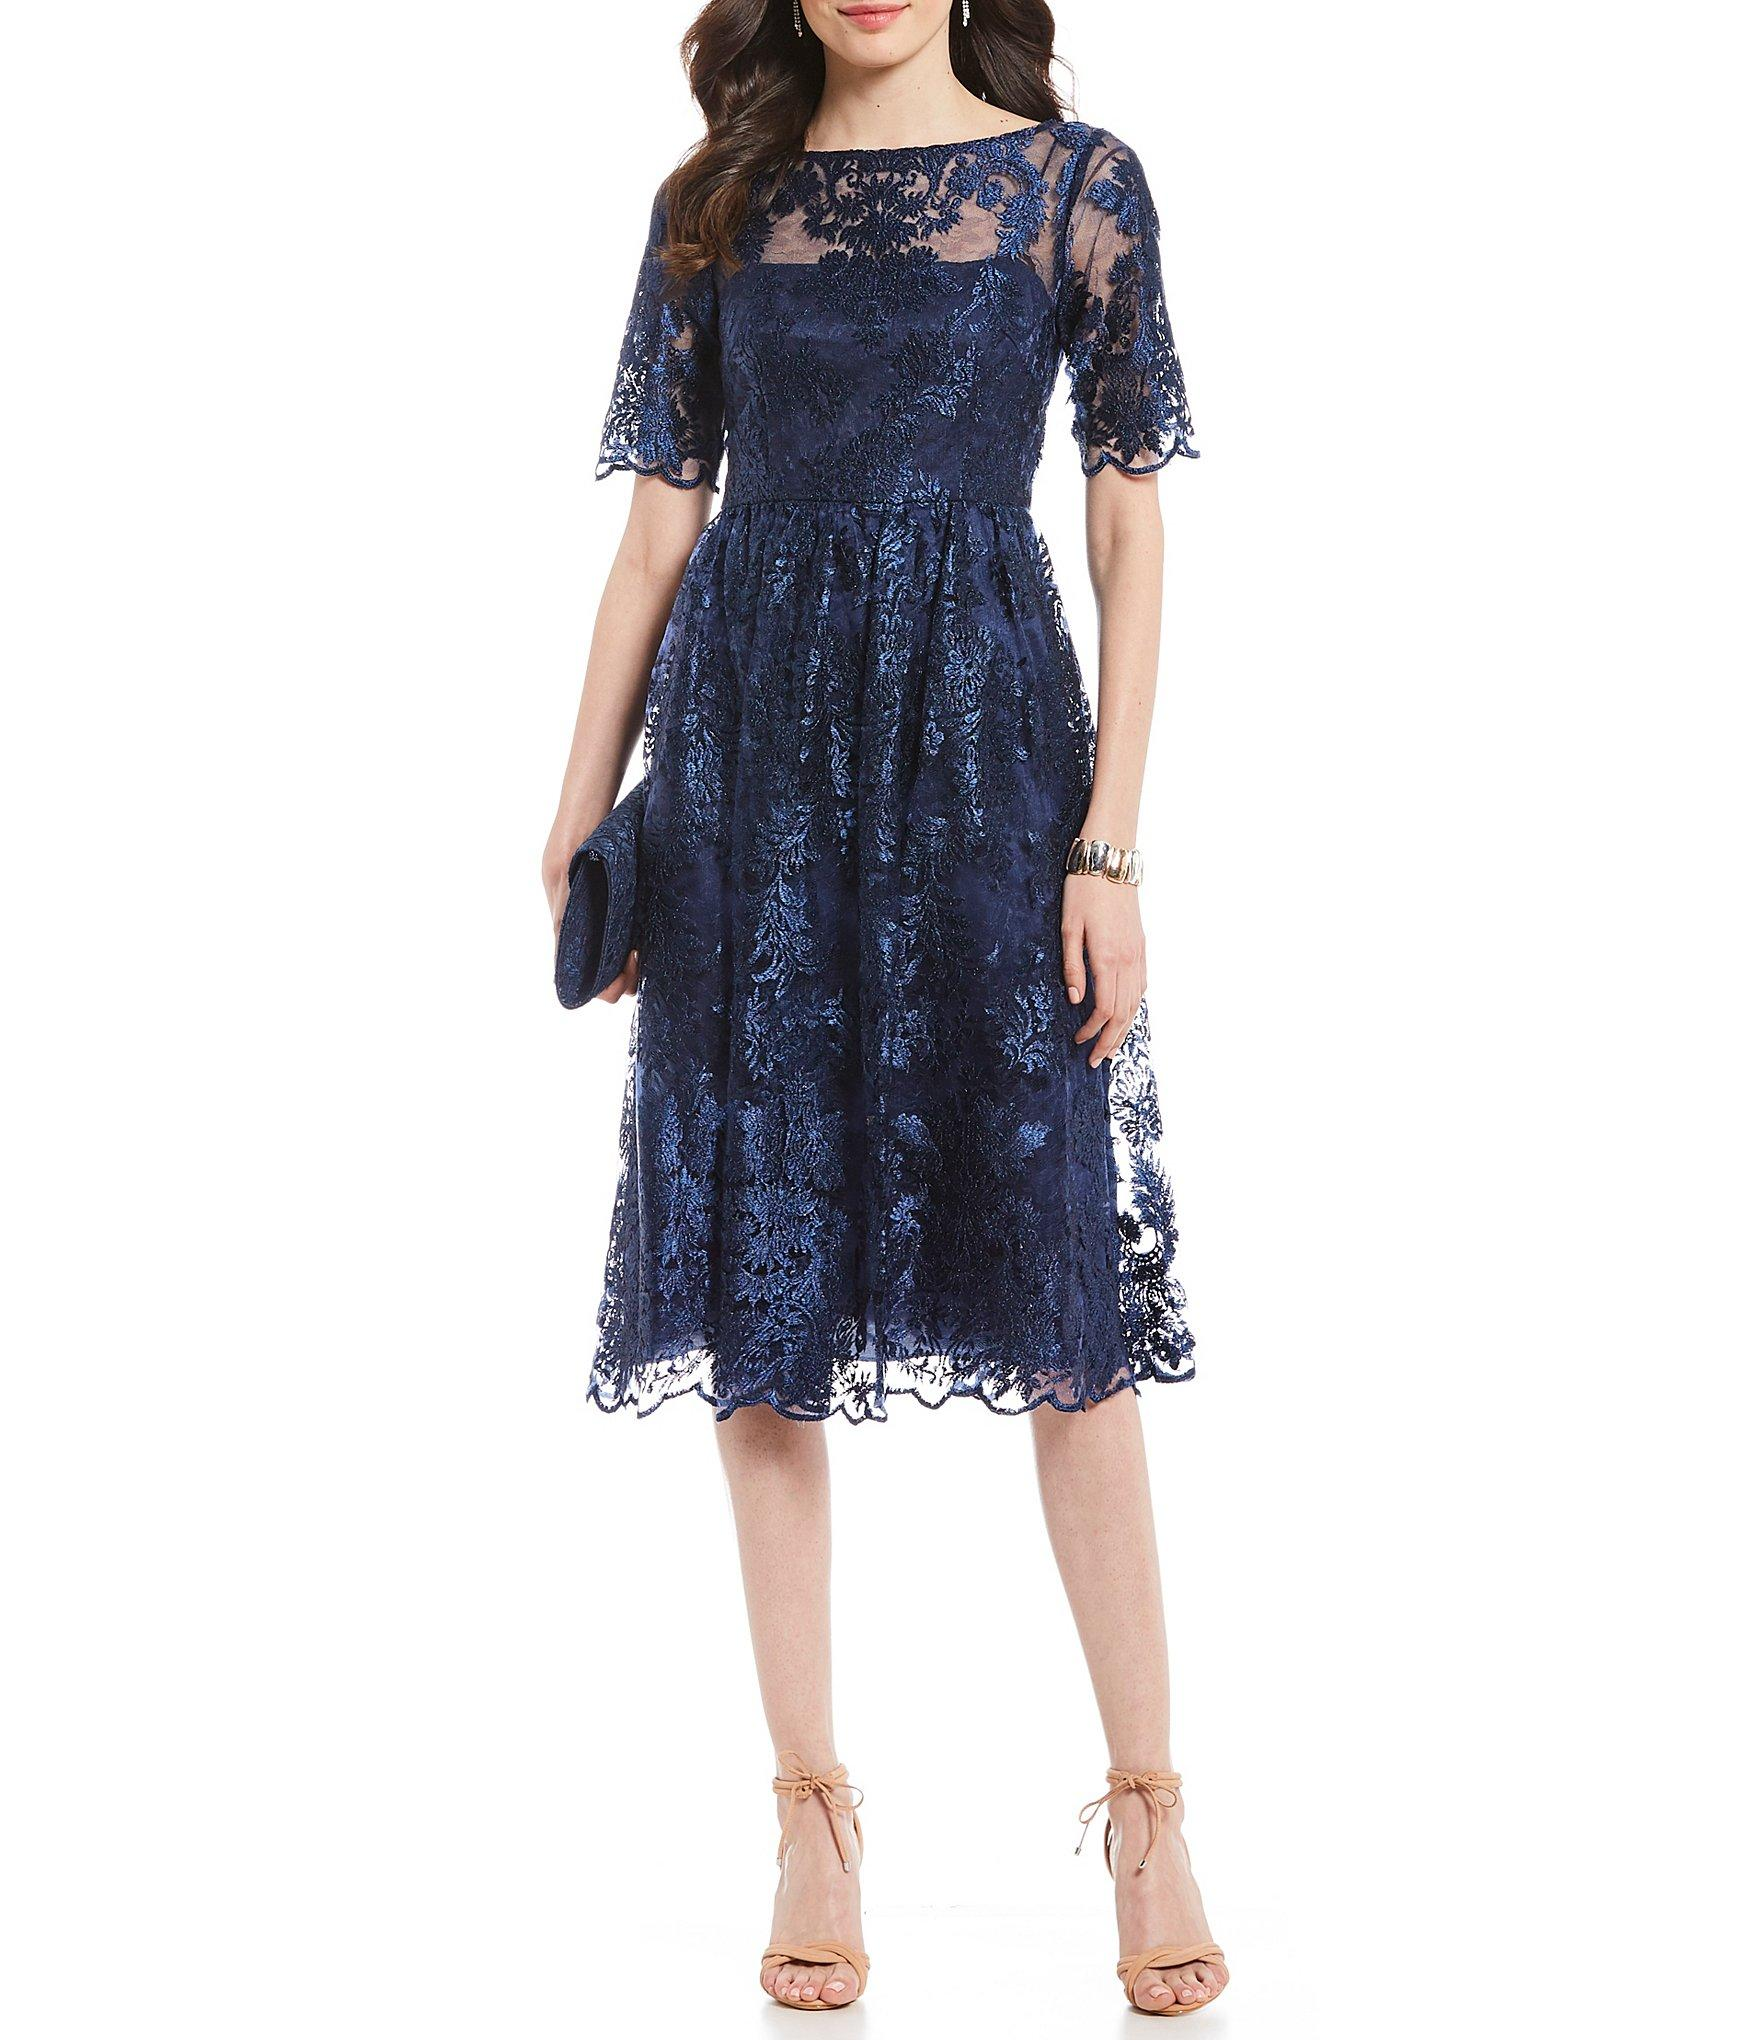 a54c6d56 Lyst - Adrianna Papell Embroidered Lace A-line Midi Dress in Blue